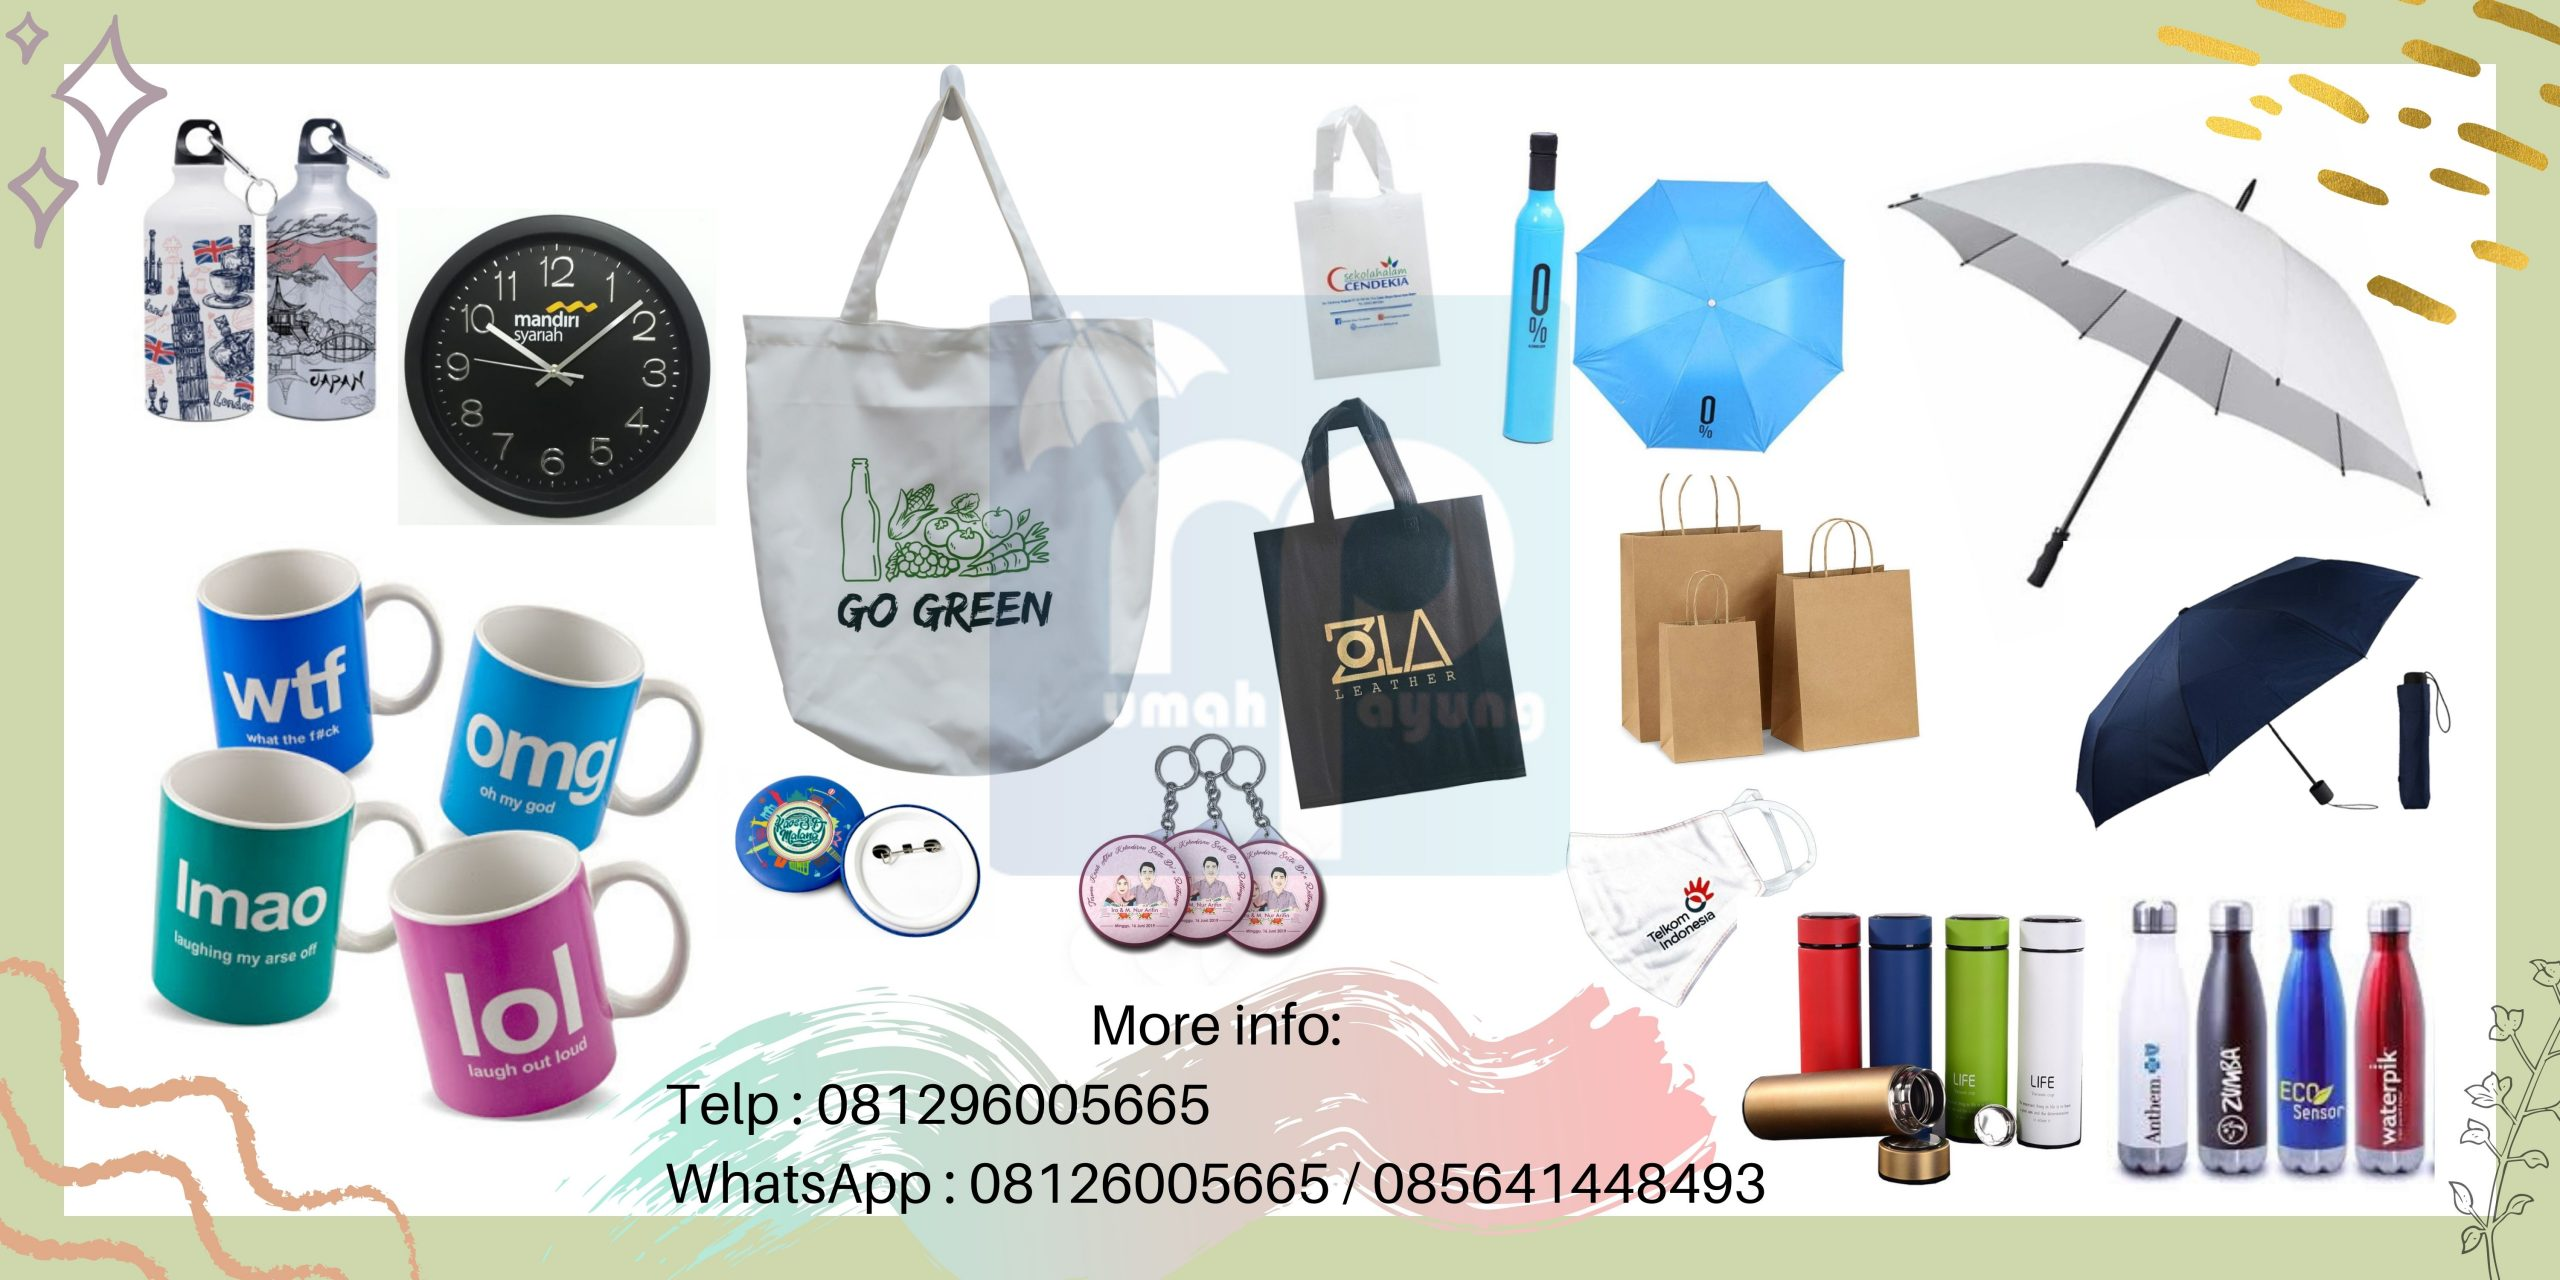 "Agen Merchandise Murah Bekasi<span class=""rating-result after_title mr-filter rating-result-14951"">			<span class=""no-rating-results-text"">No ratings yet.</span>		</span>"